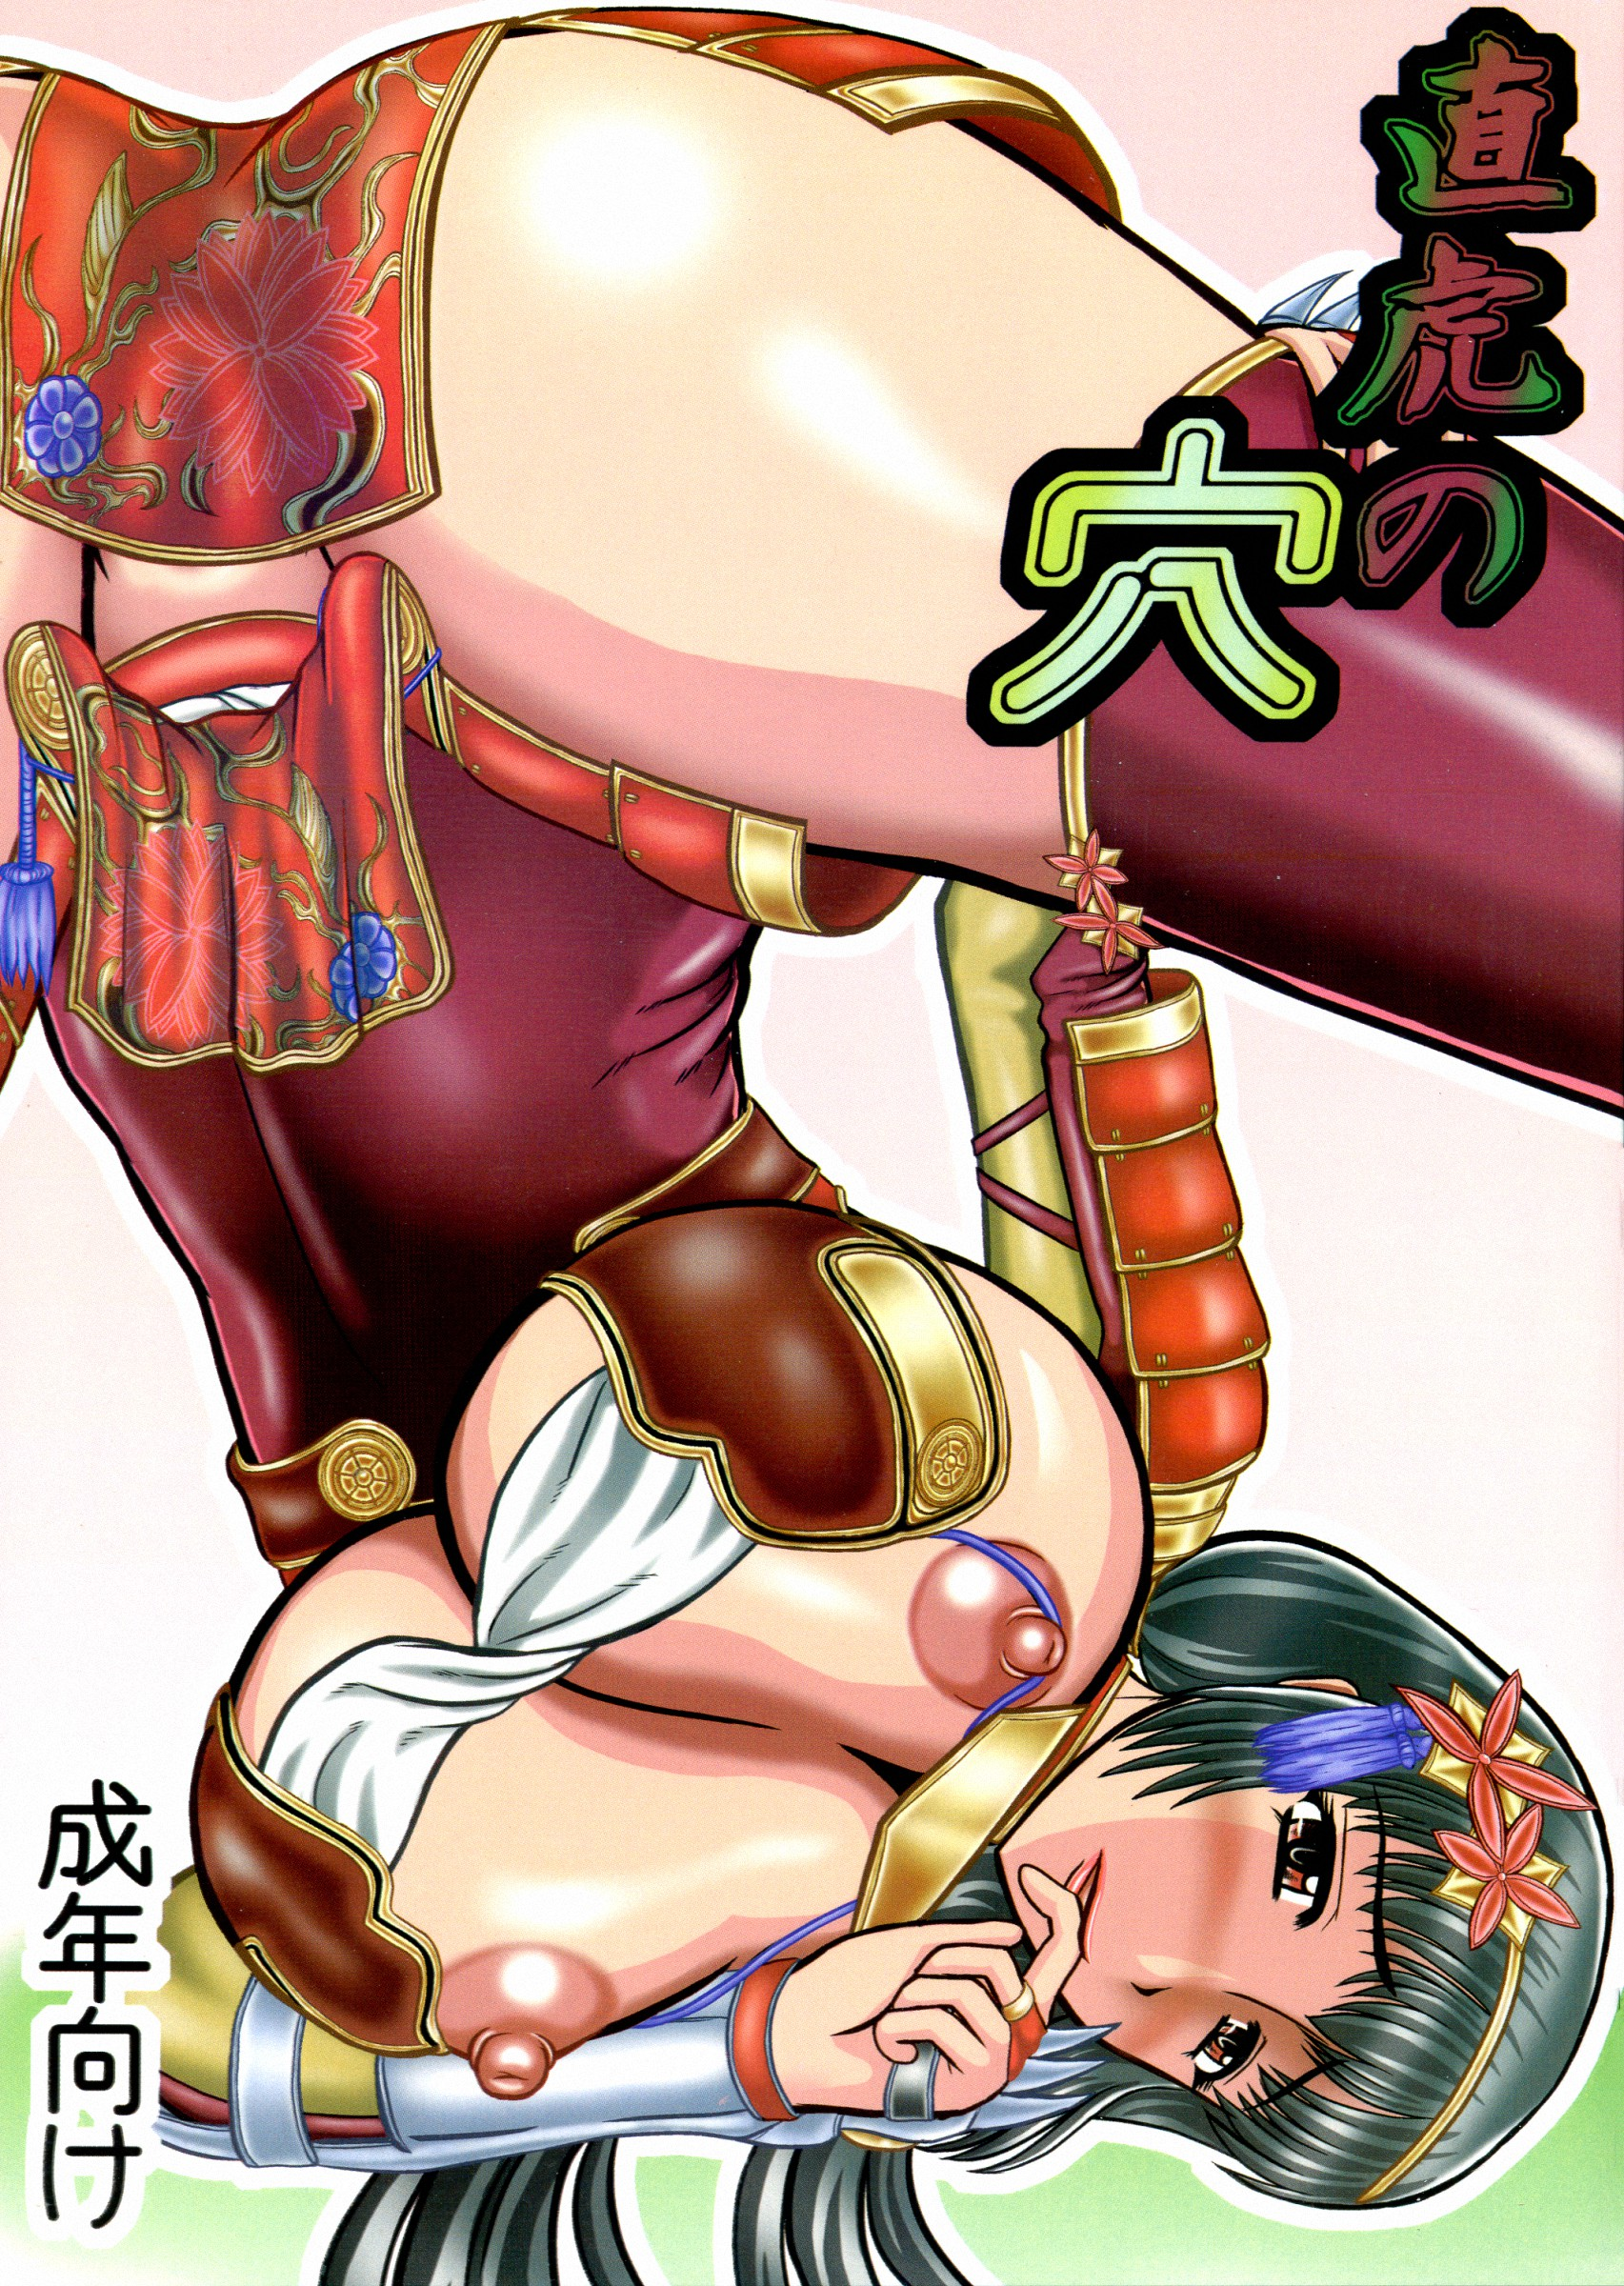 Samurai warriors hentai pic cartoon clip